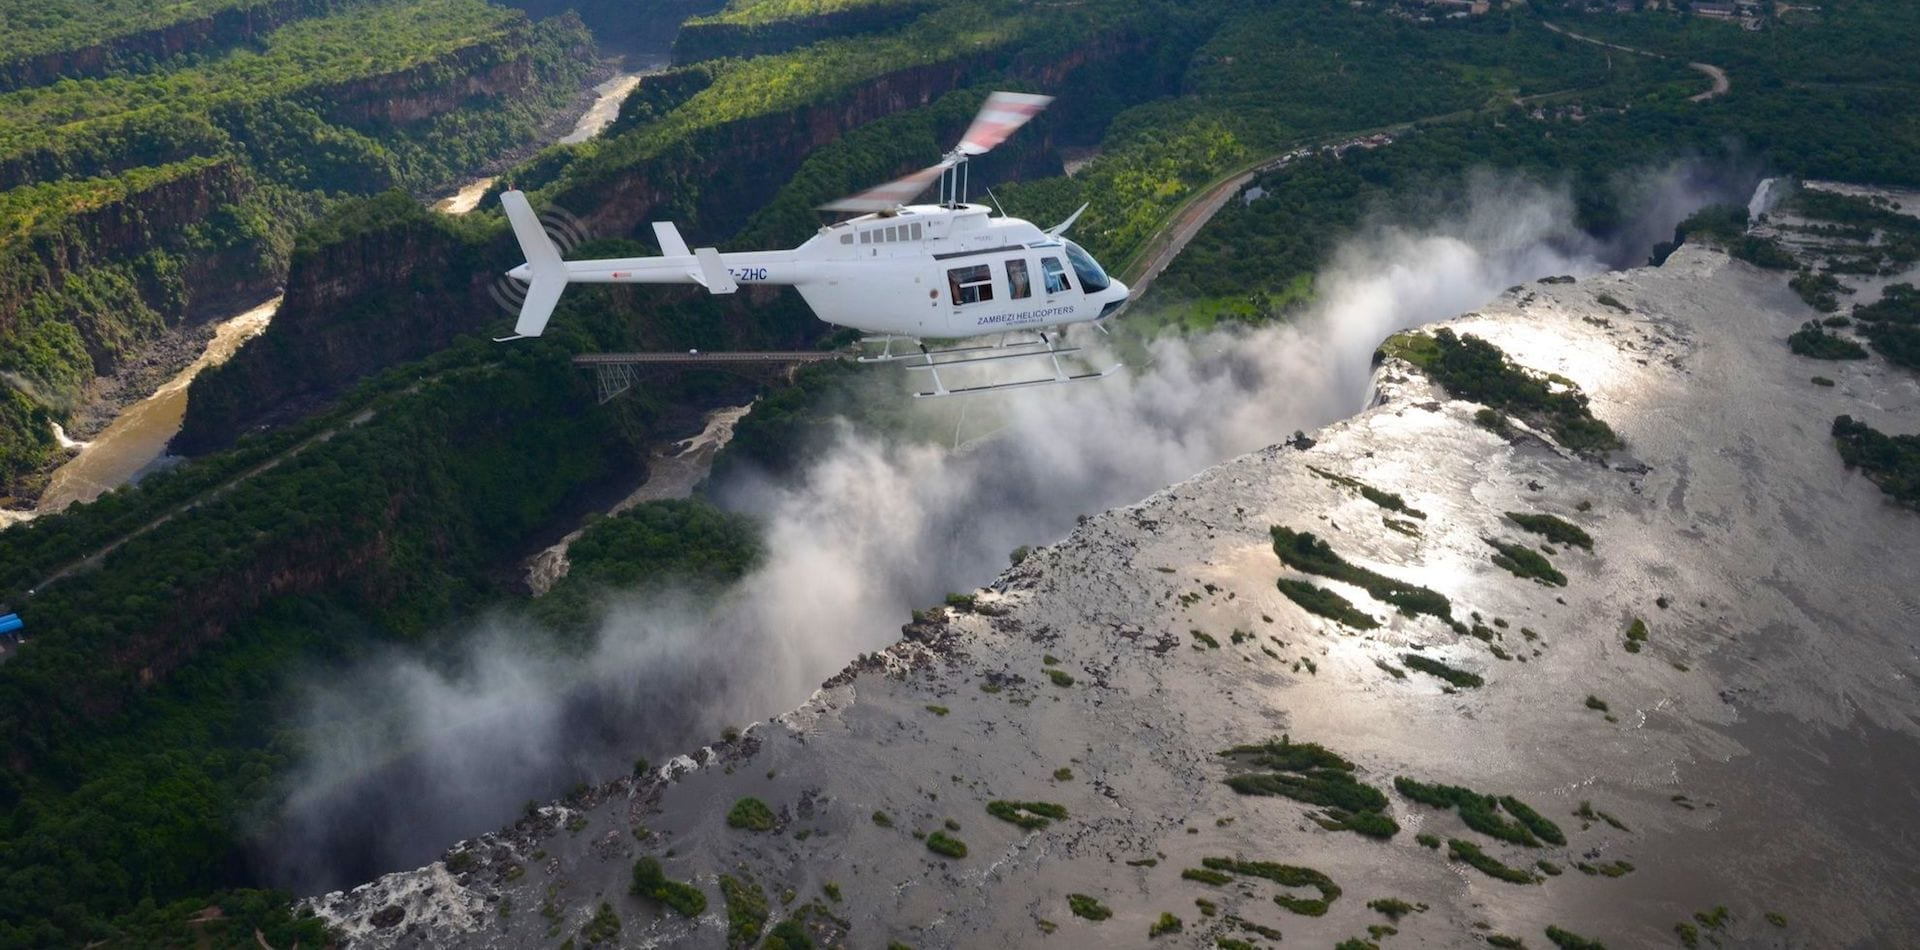 Helicopter over Victoria Falls, Zambia, Africa